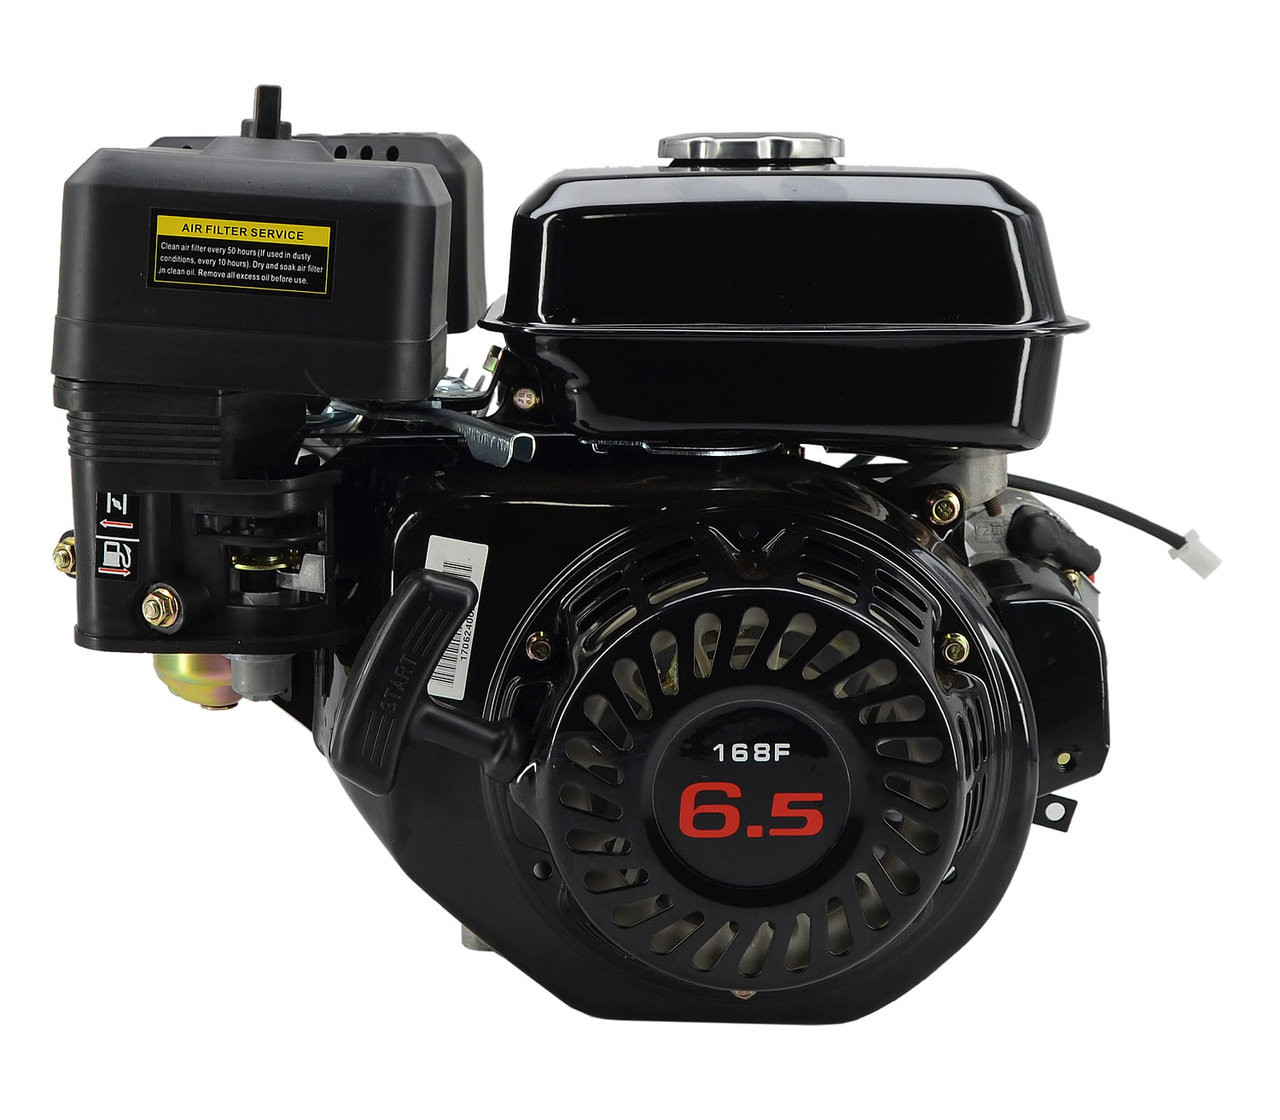 6.5hp Mid XRS Manual Start Engine